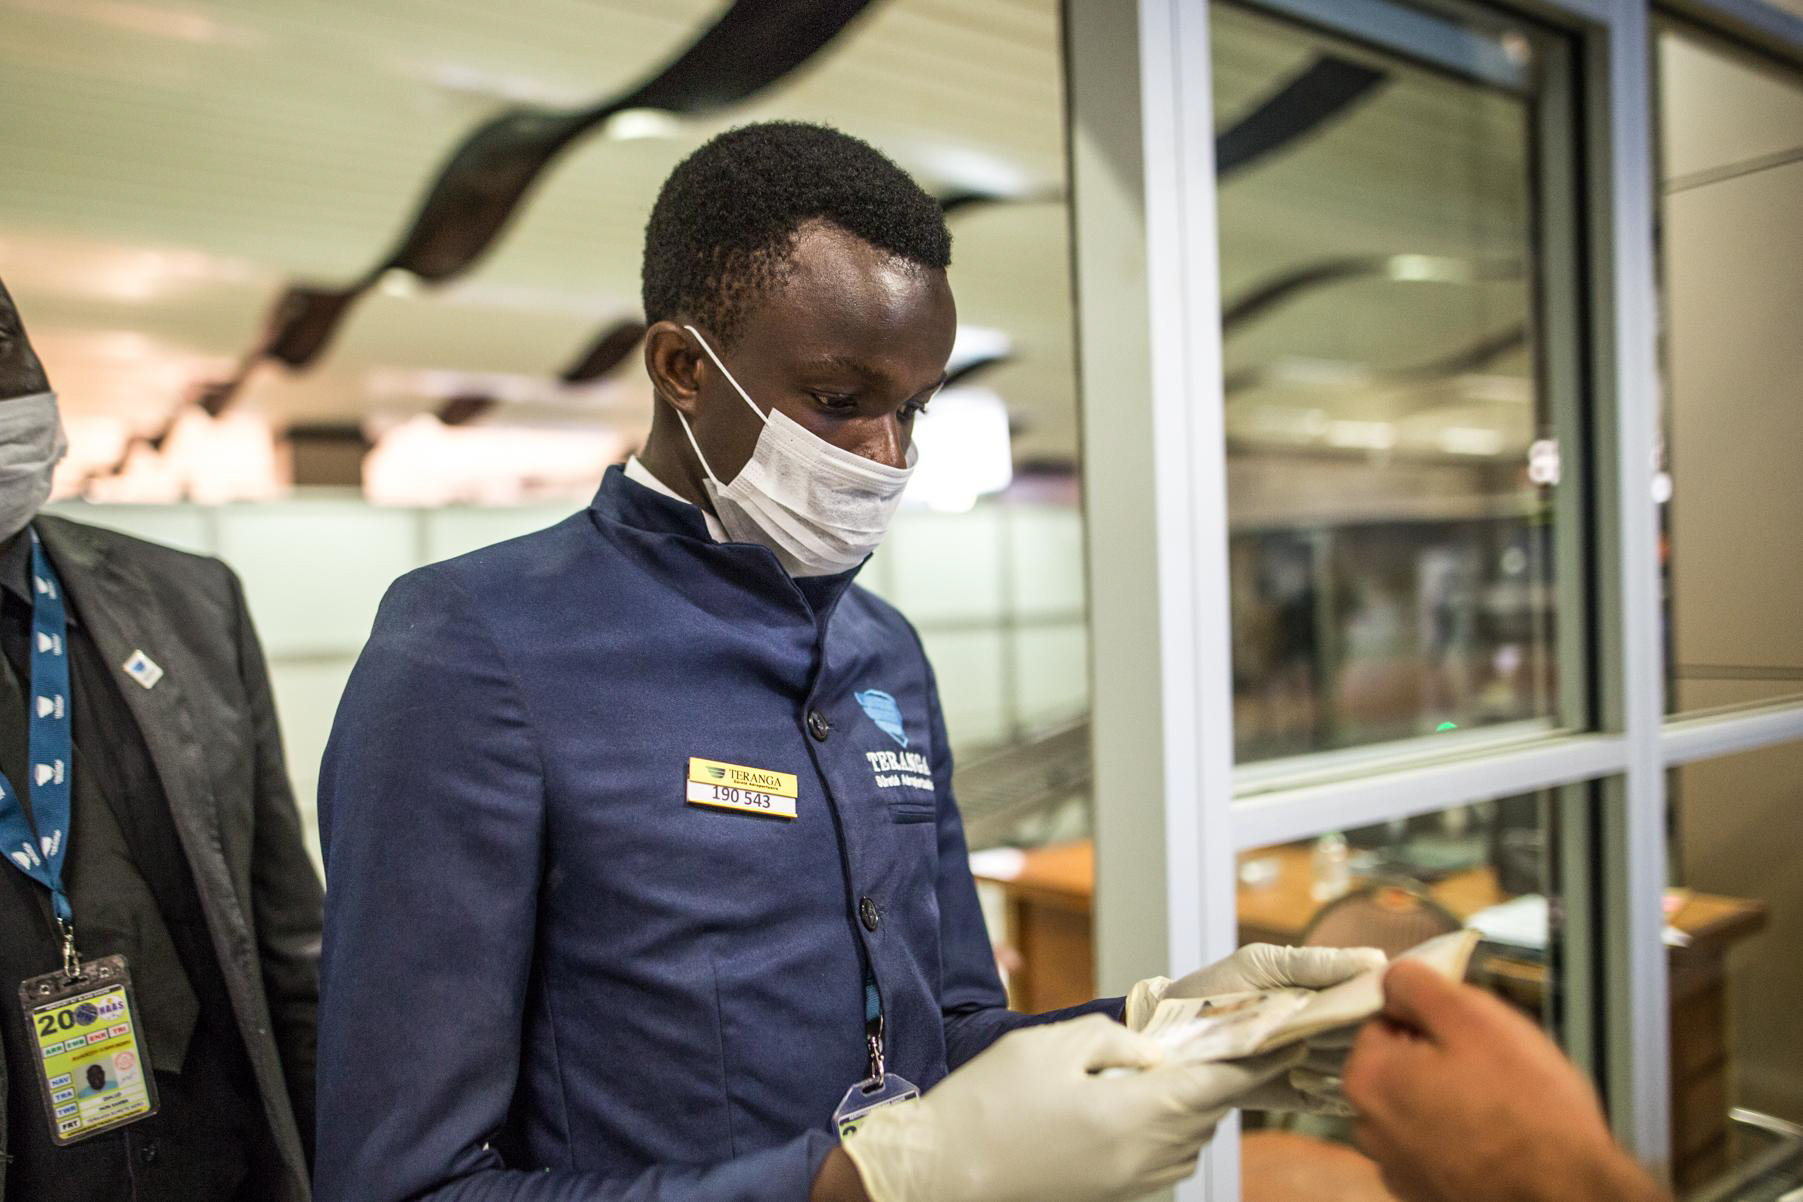 Africa strives to stay ahead of curve in COVID-19 battle